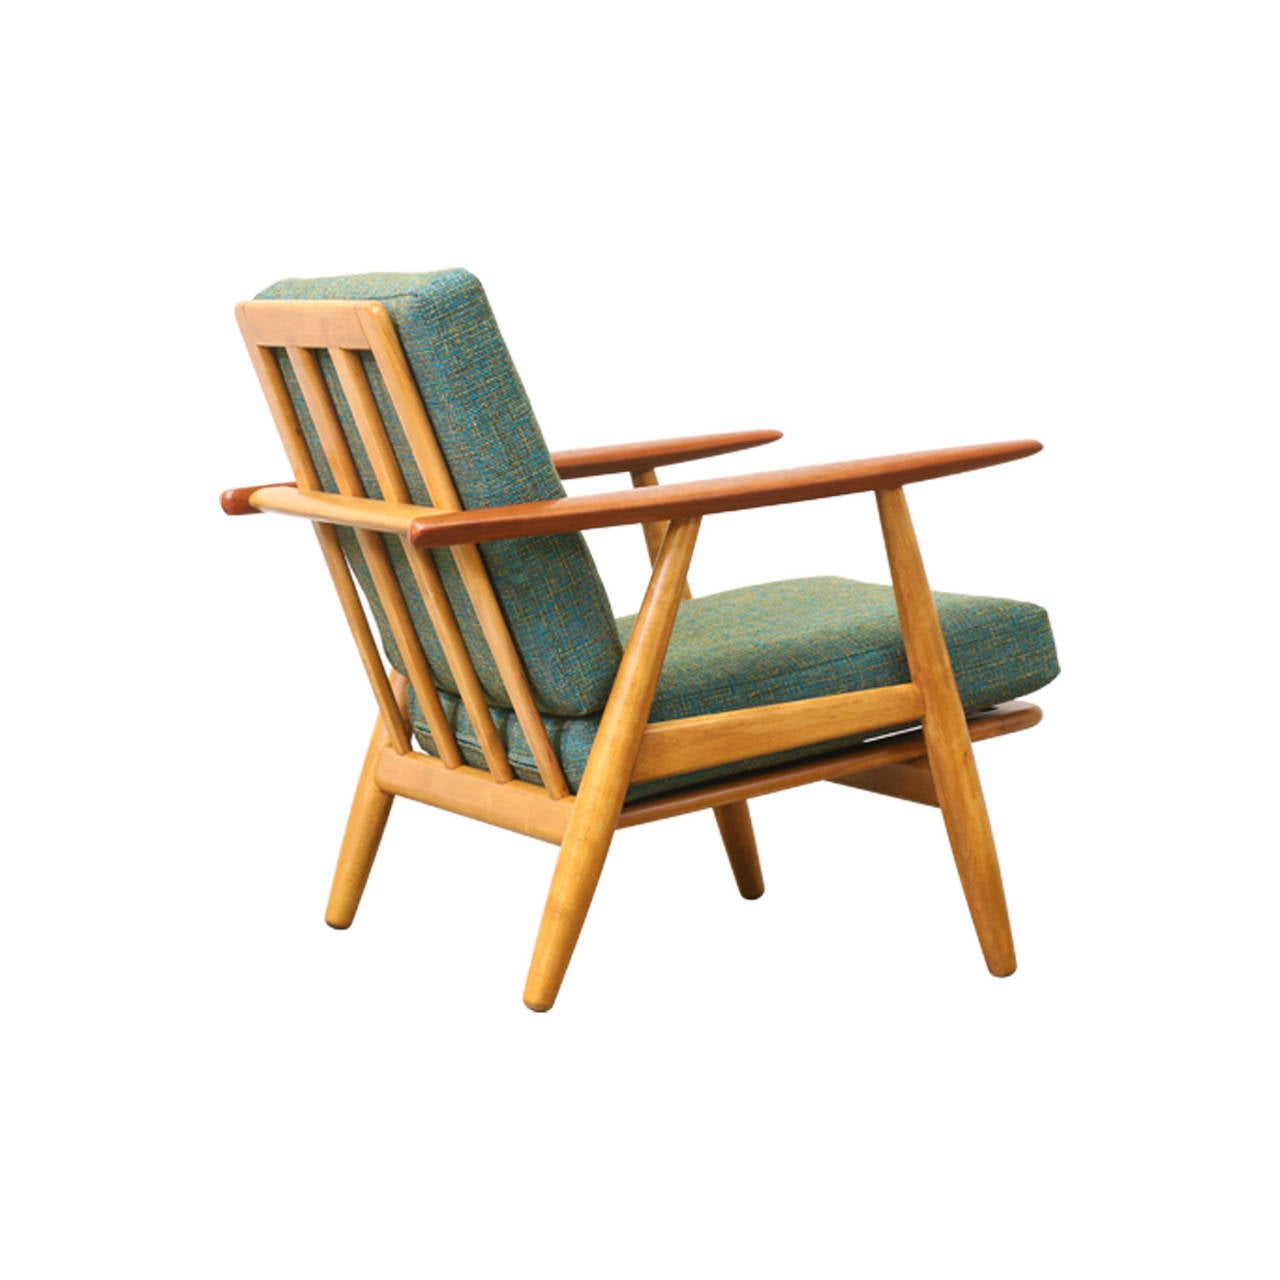 Cigar Lounge Chairs Hans J Wegner Ge 240 Cigar Lounge Chair For Getama At